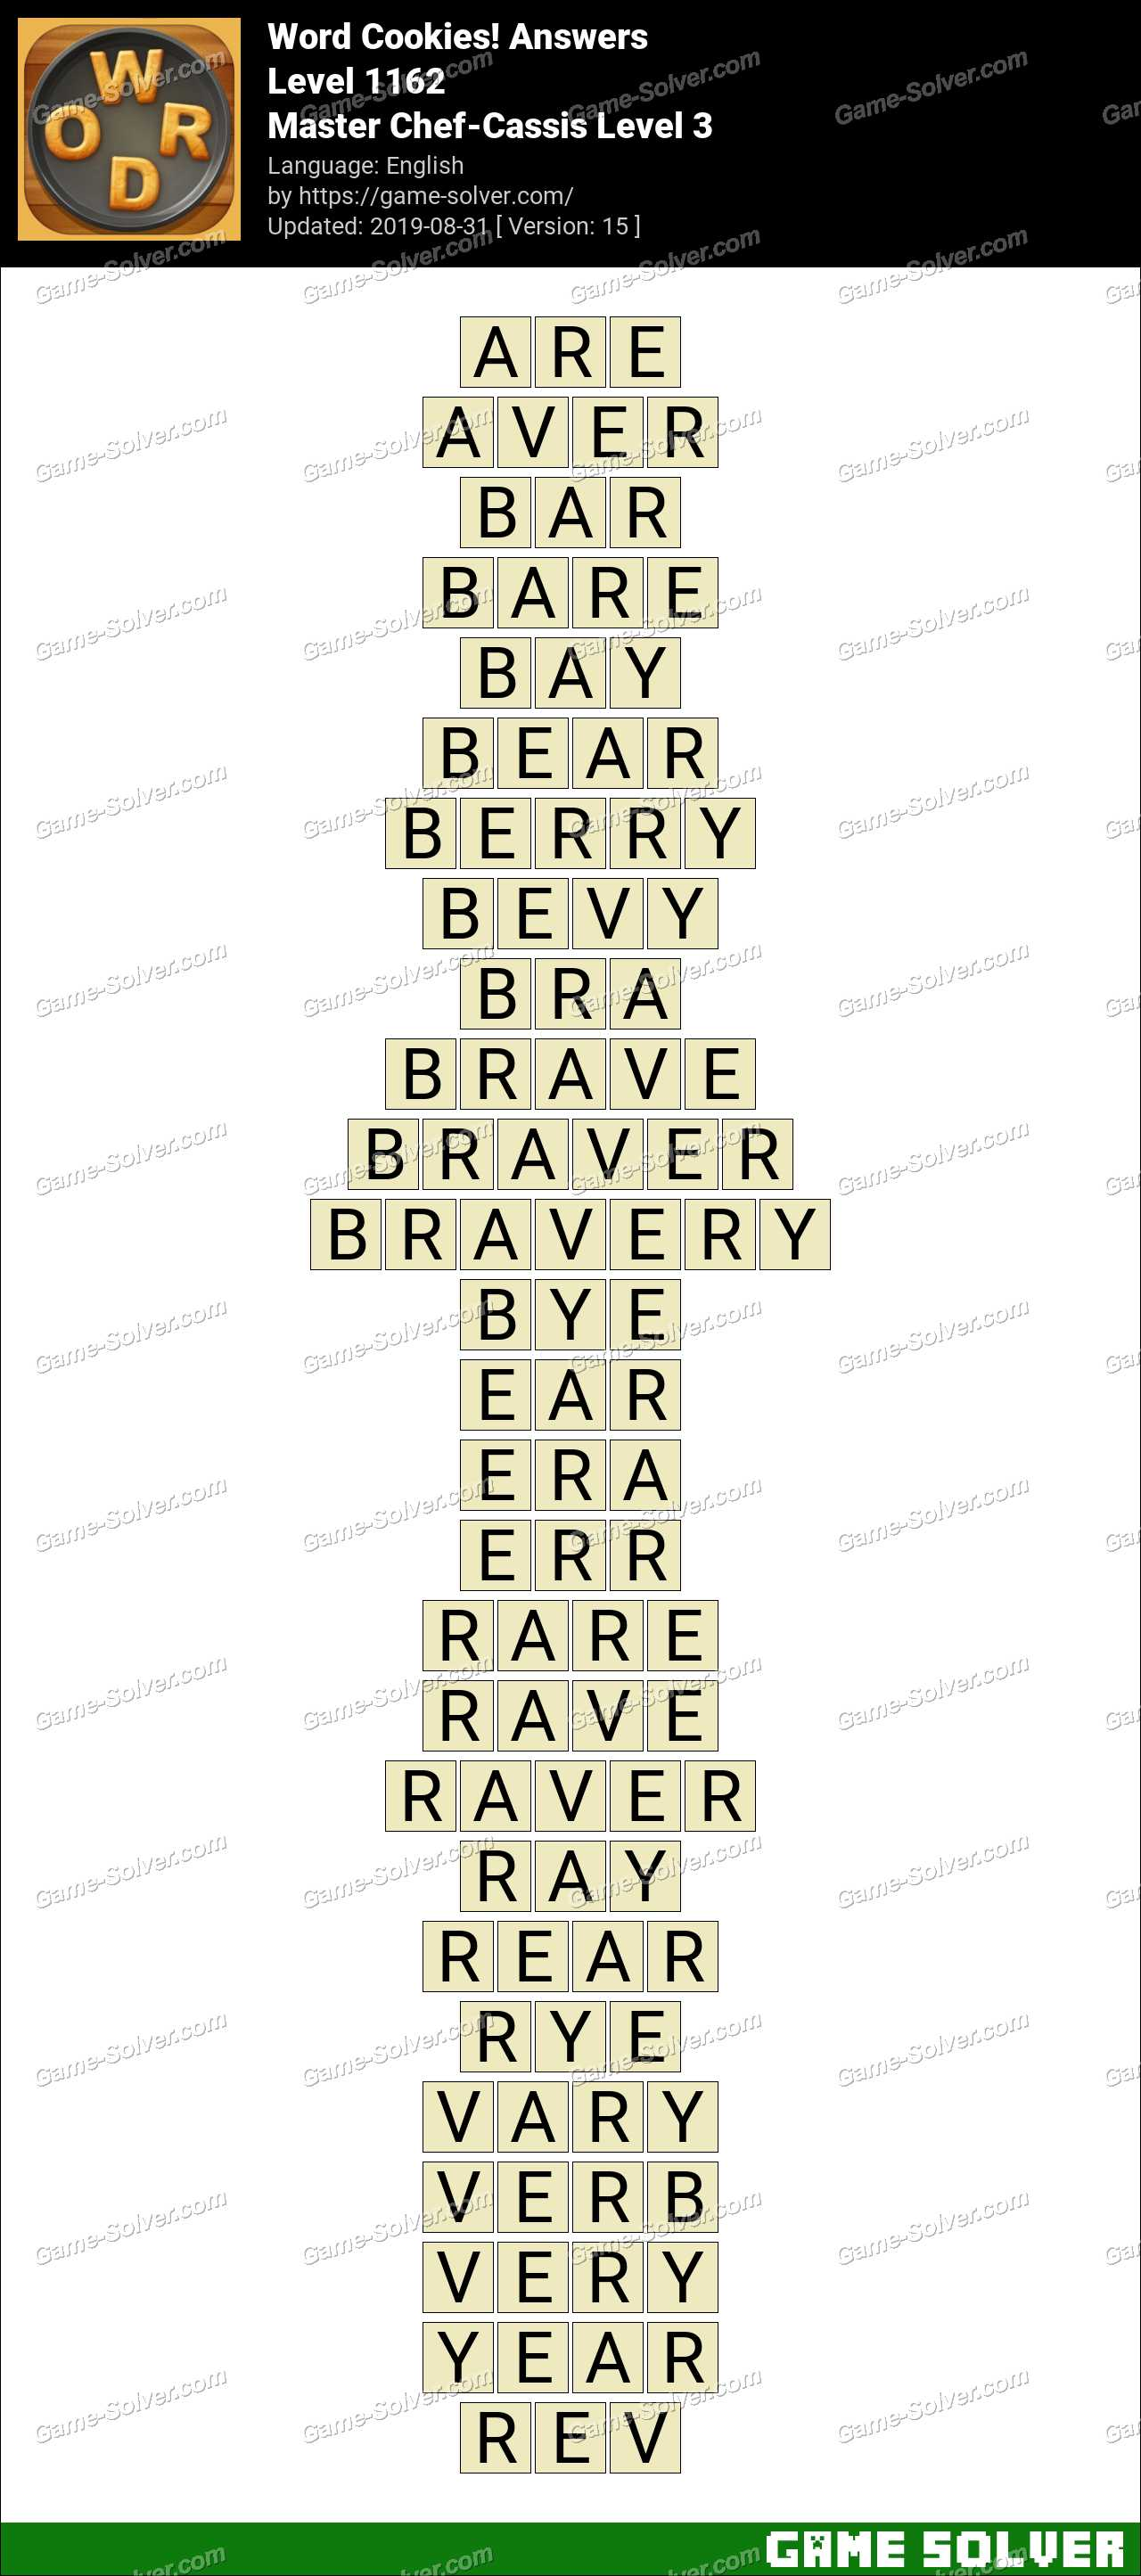 Word Cookies Master Chef-Cassis Level 3 Answers